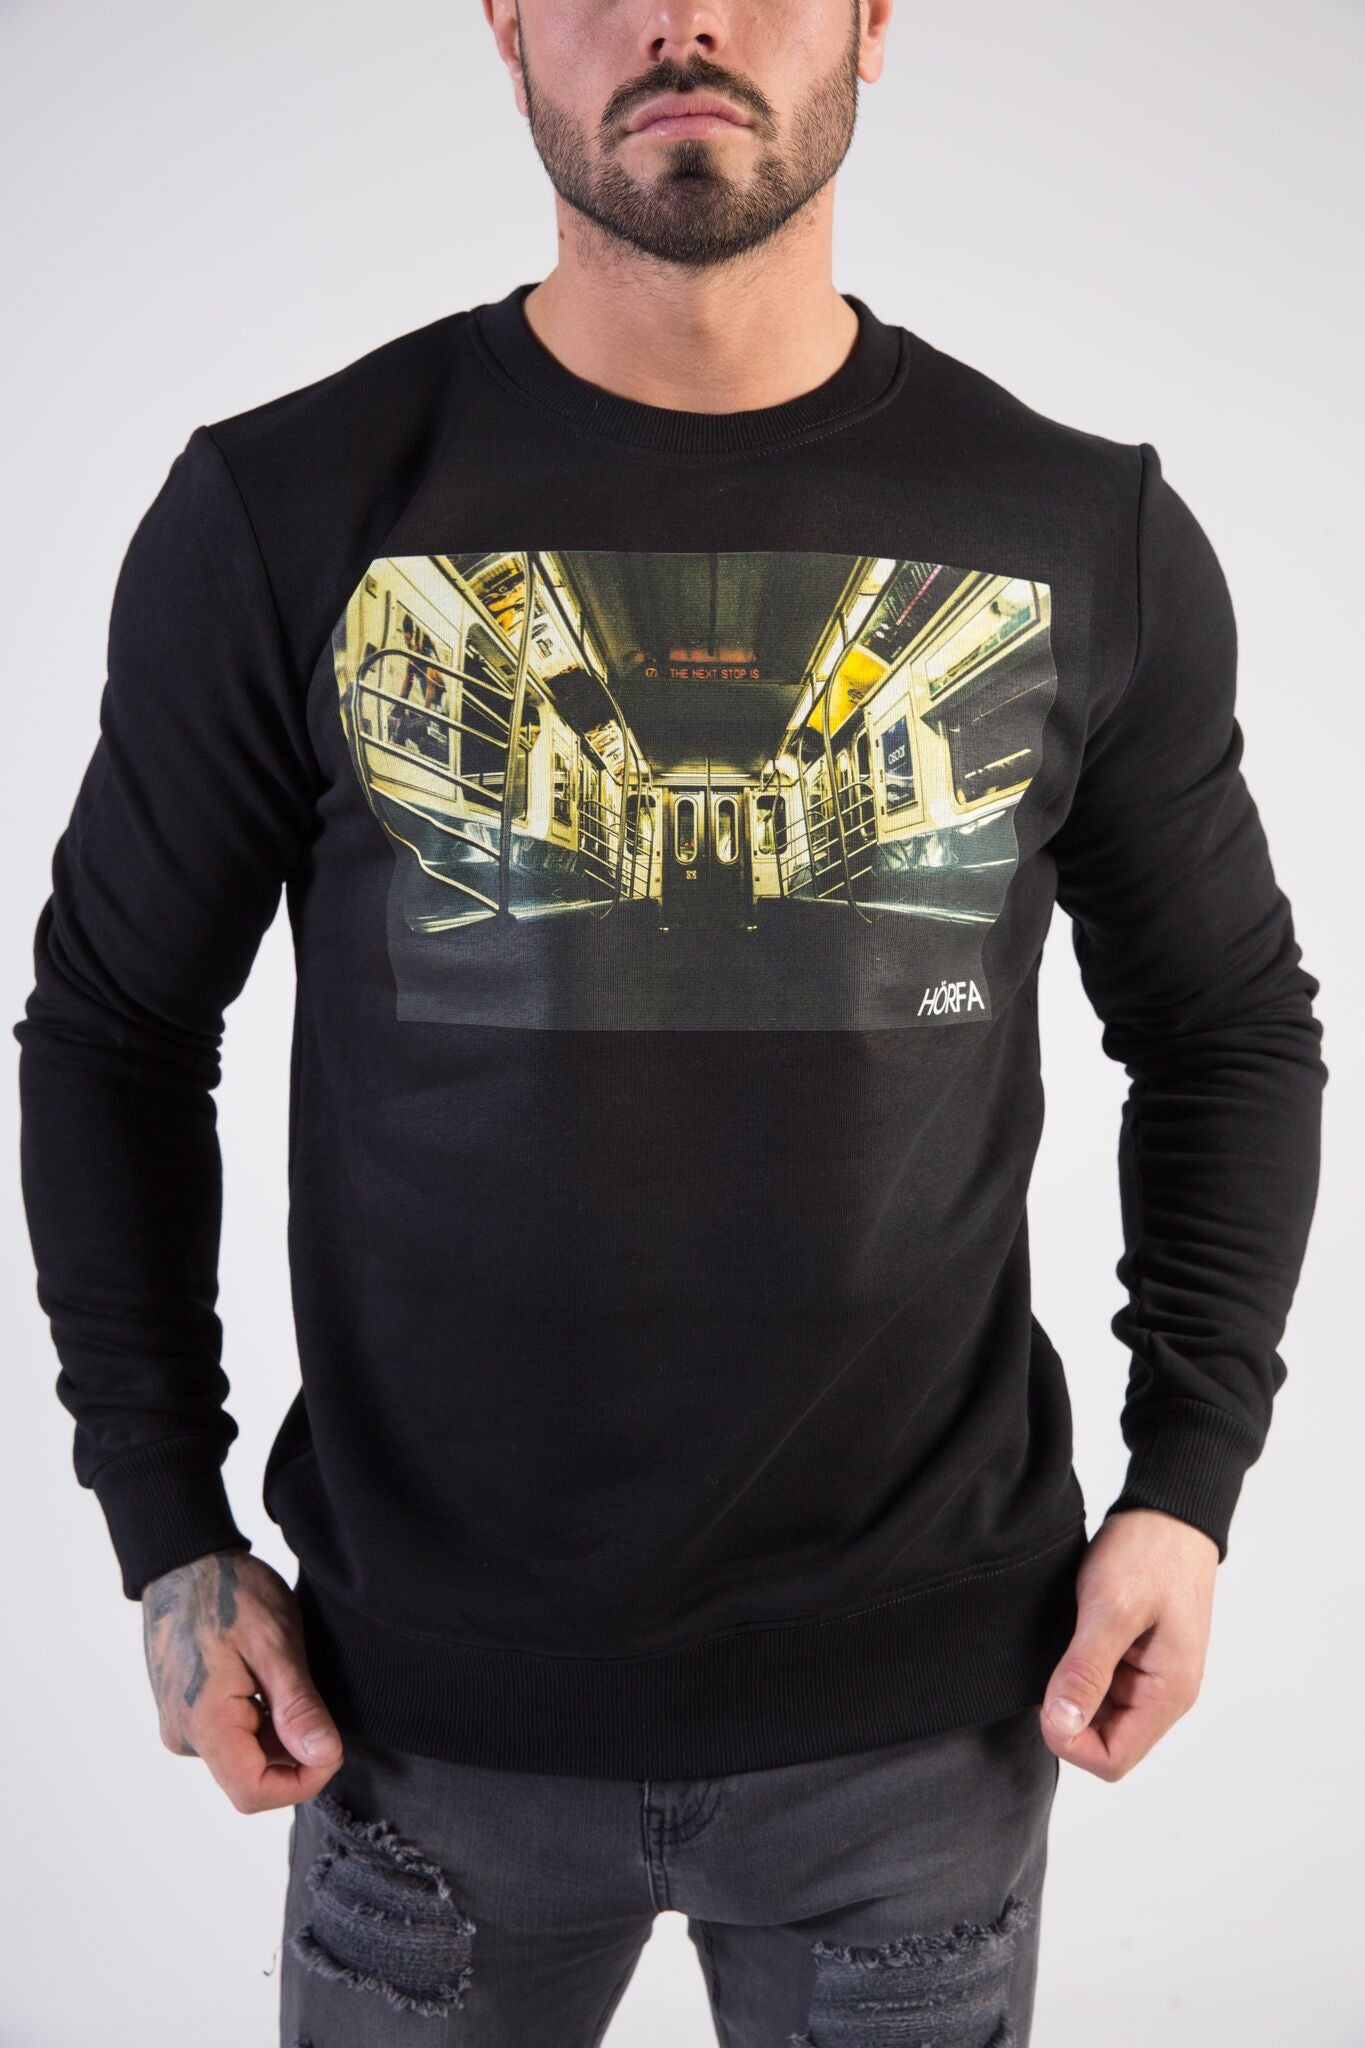 SUBWAY Sweatshirt - HÖRFA is a men's global fashion brand that provides products such as Fashionable Watches, Wallets, Sunglasses, Belts, Beard and Male Grooming Products